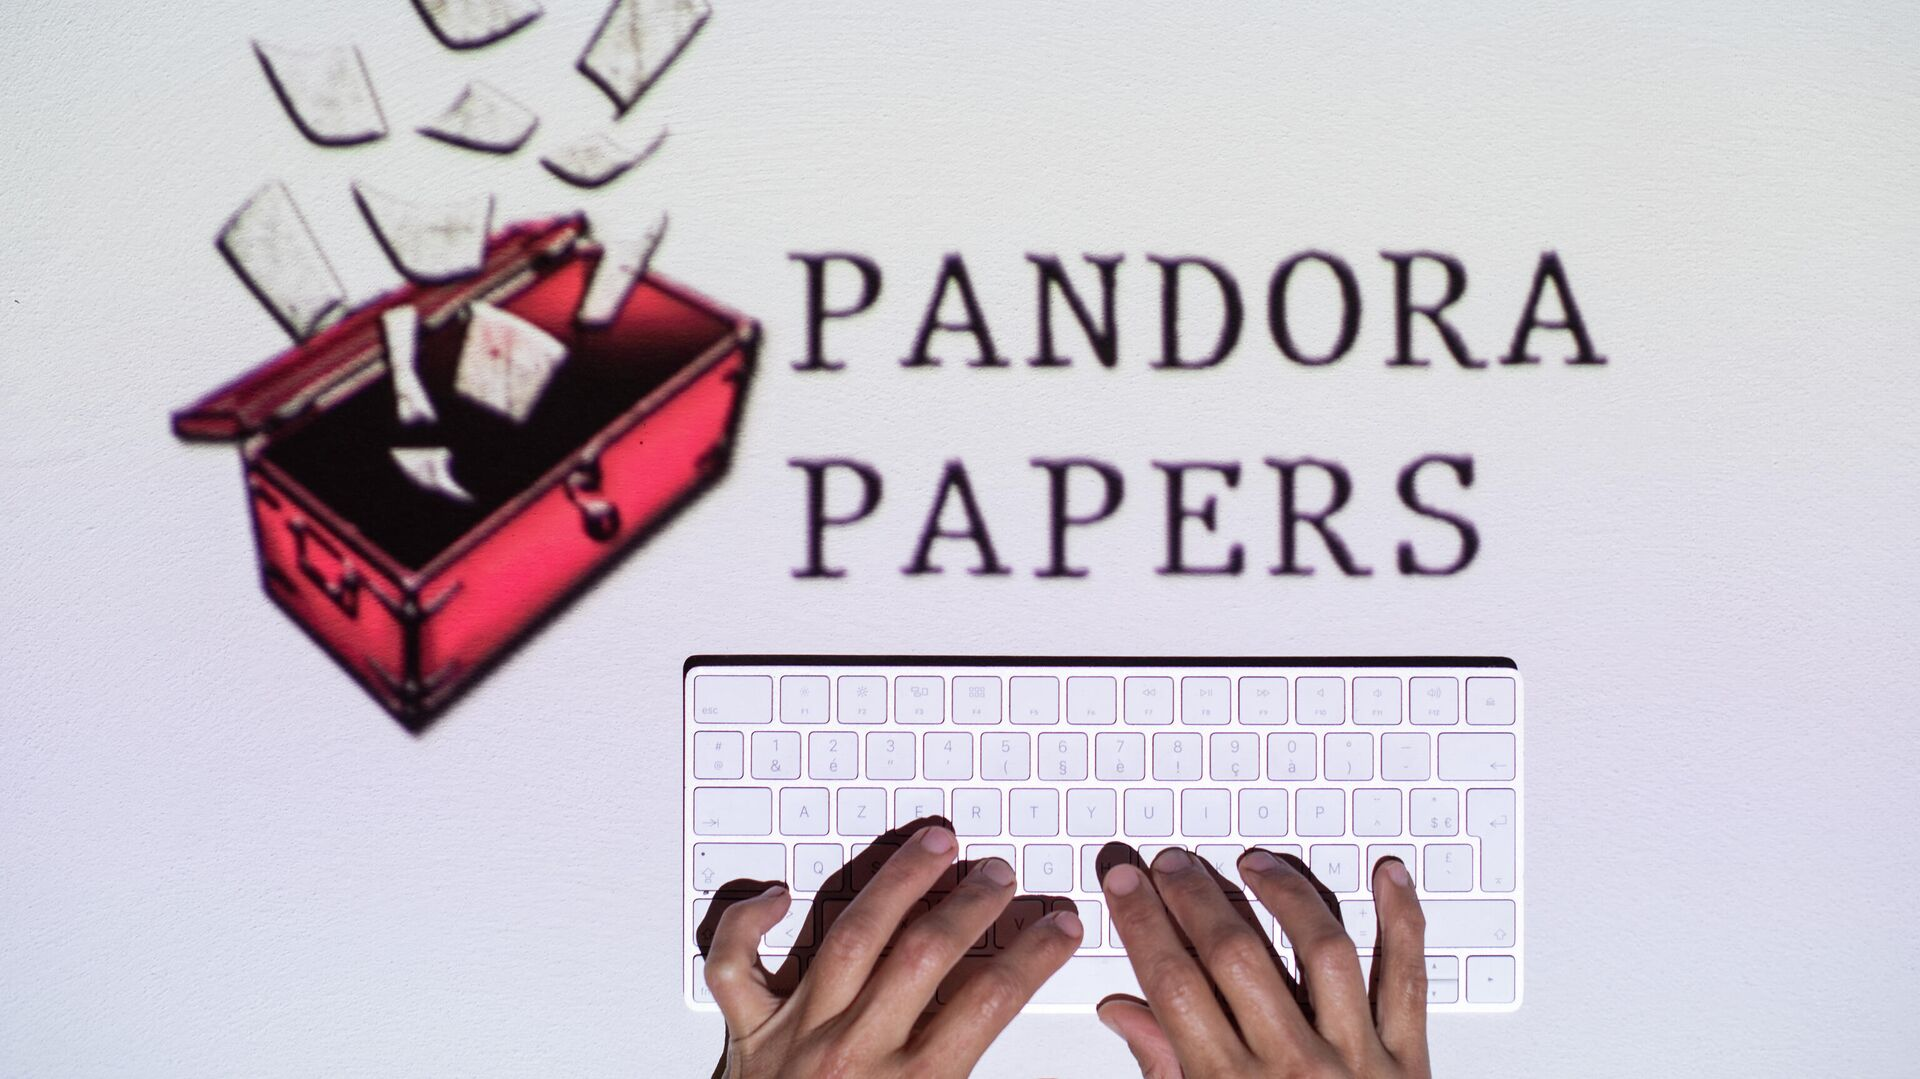 This photograph illustration shows hands typing on a keyboard in front of the logo of Pandora Papers, in Lavau-sur-Loire, western France, on October 4, 2021 - Sputnik International, 1920, 09.10.2021